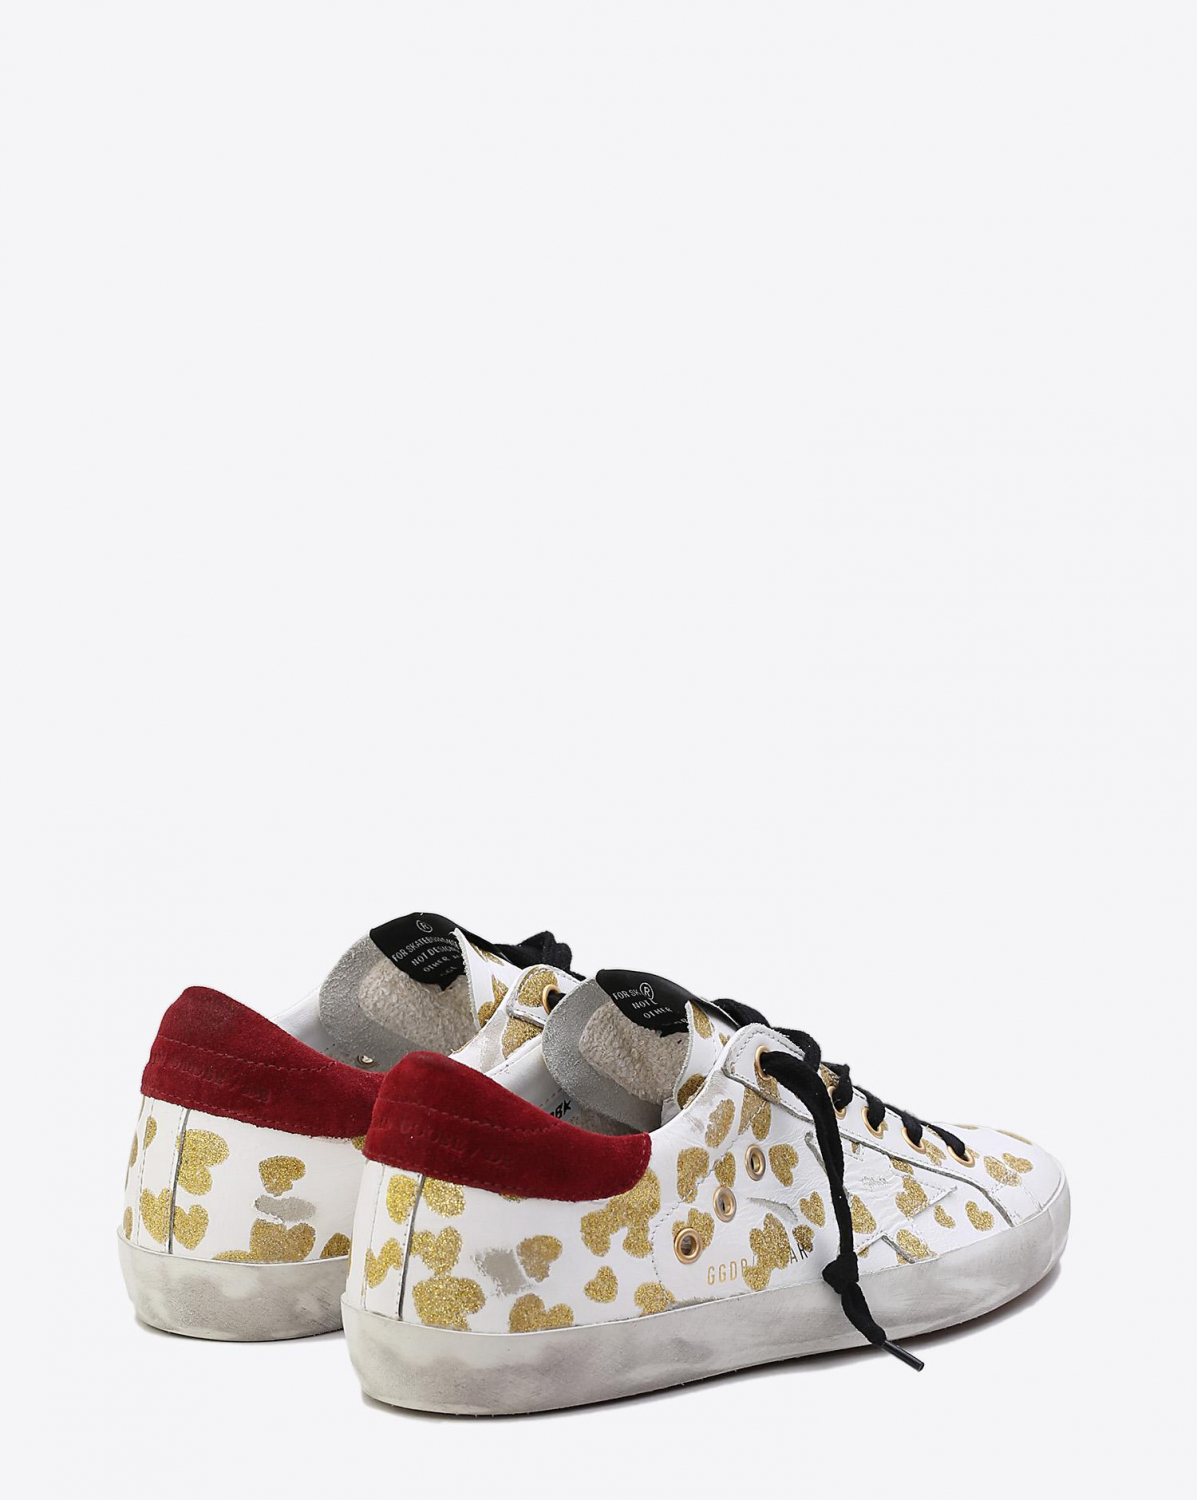 Golden Goose Woman Collection Sneakers Superstar White Leather - Gold Drifted Hearts